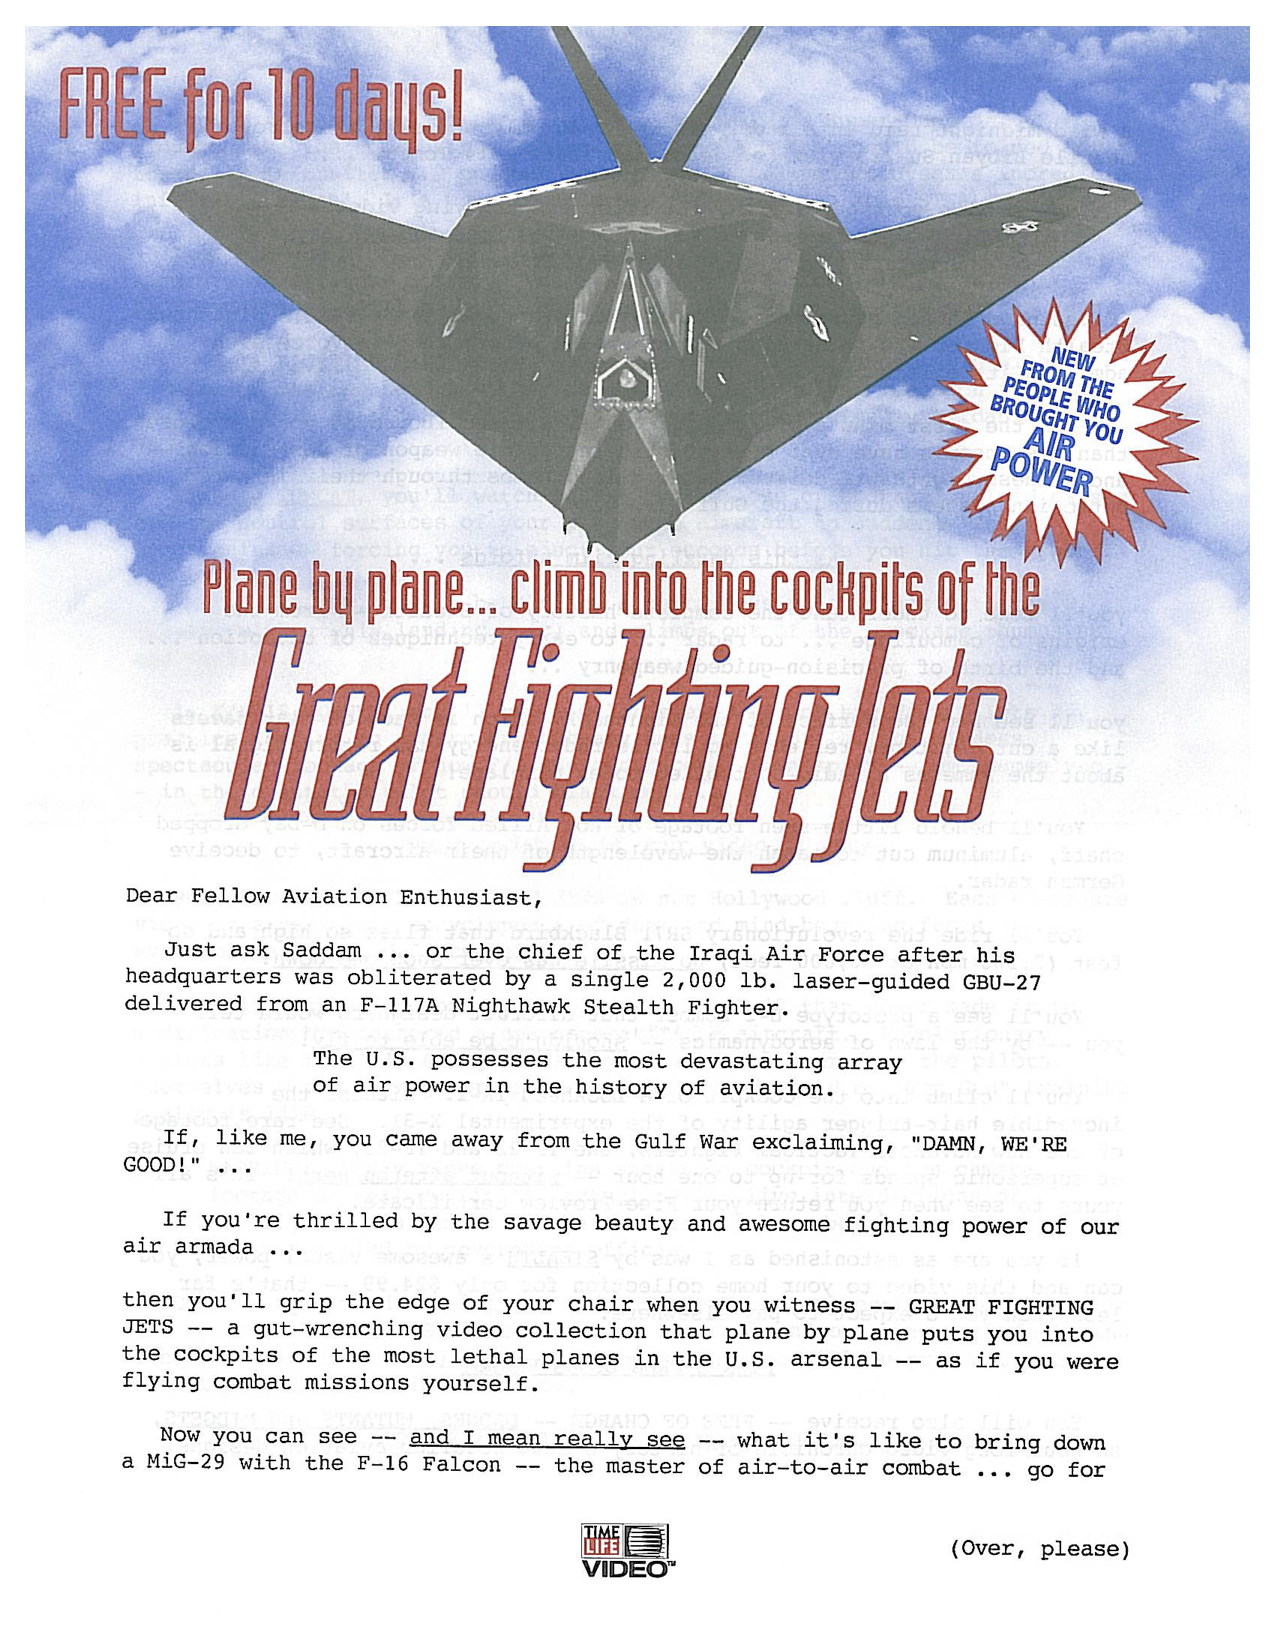 image of Great Fighter Jets direct mail sales letter page 1